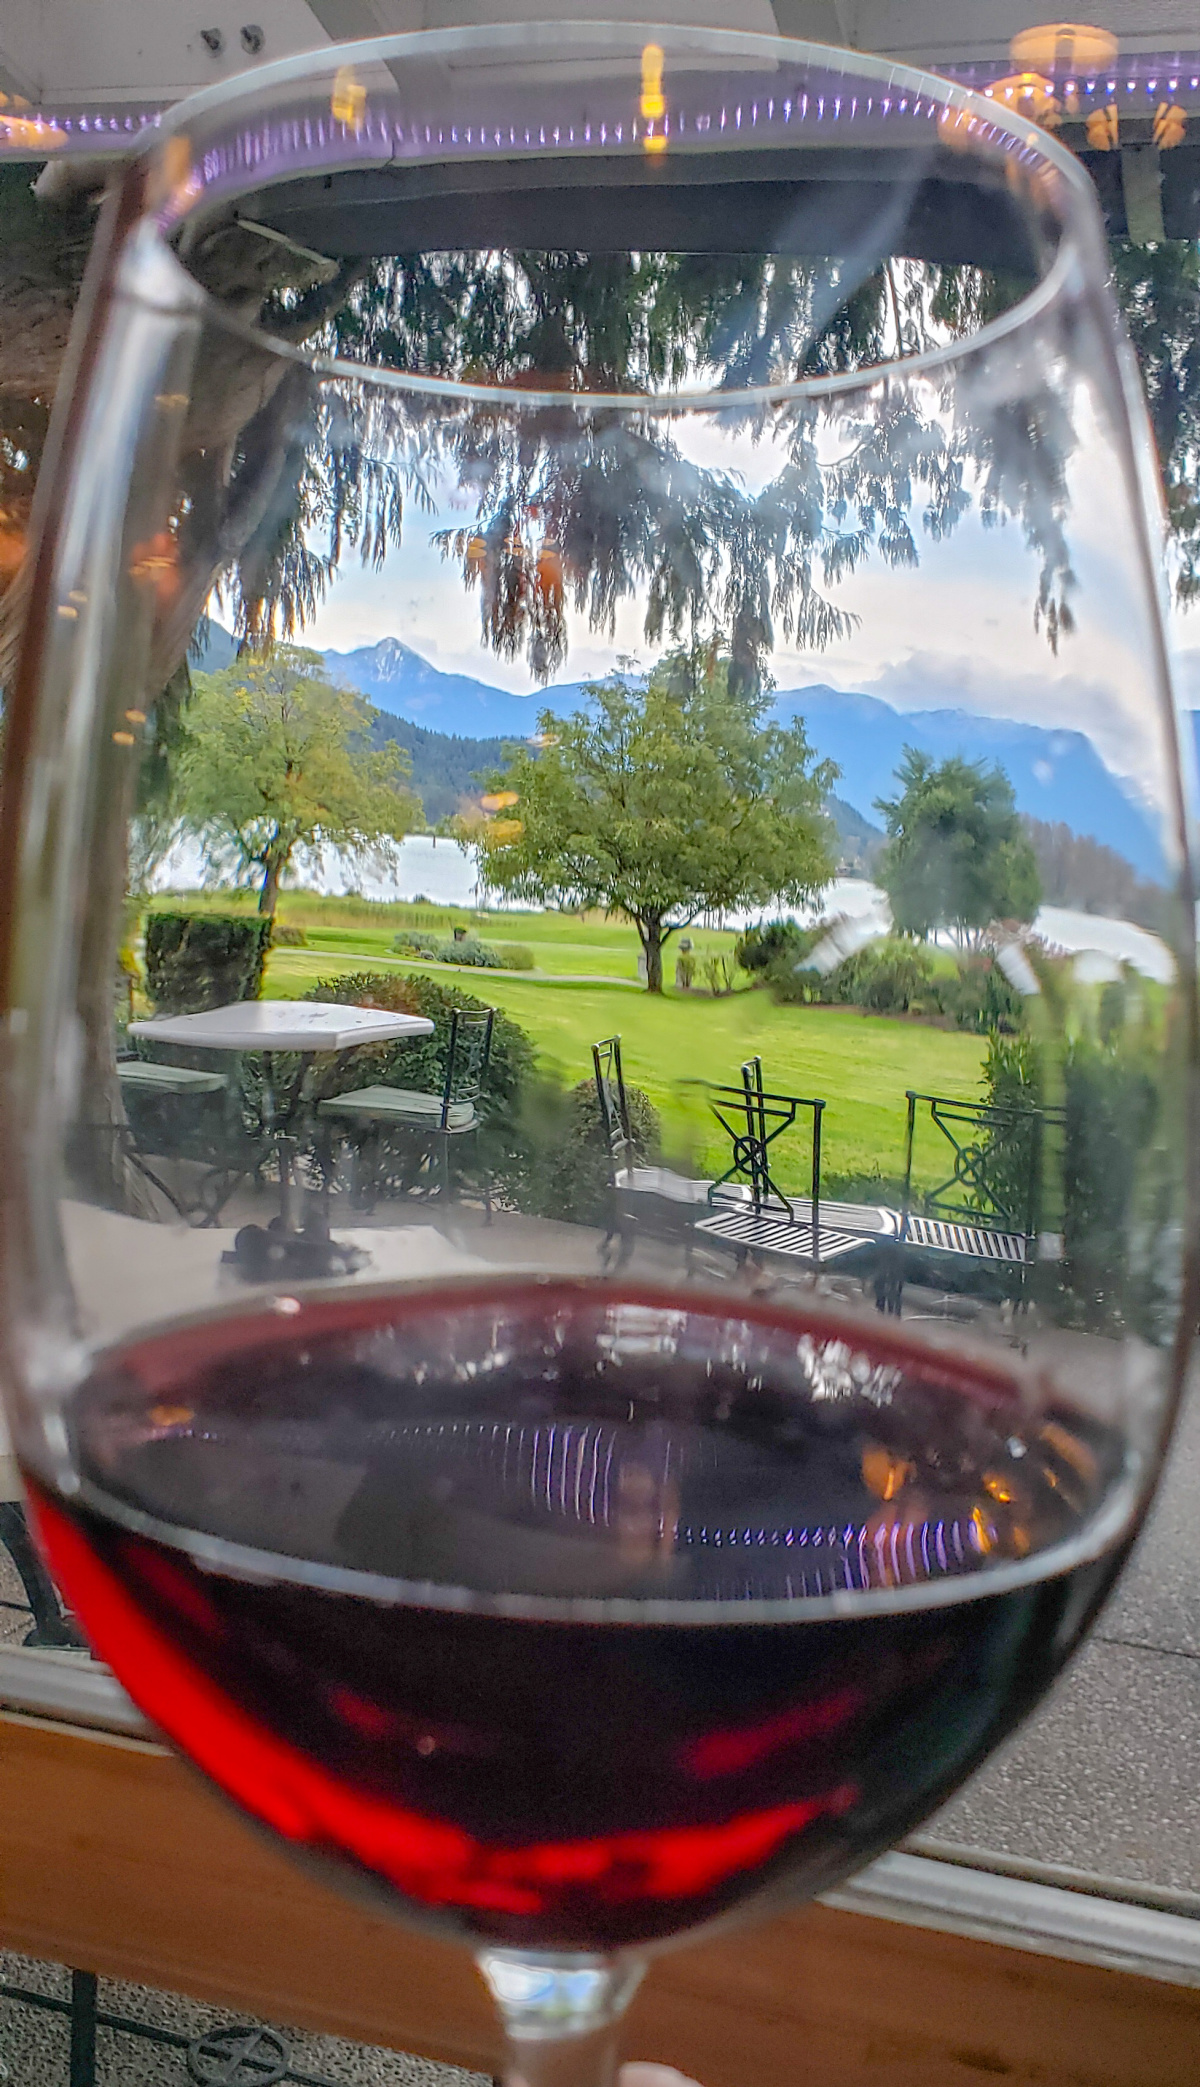 River's Edge golf course view through a wine glass